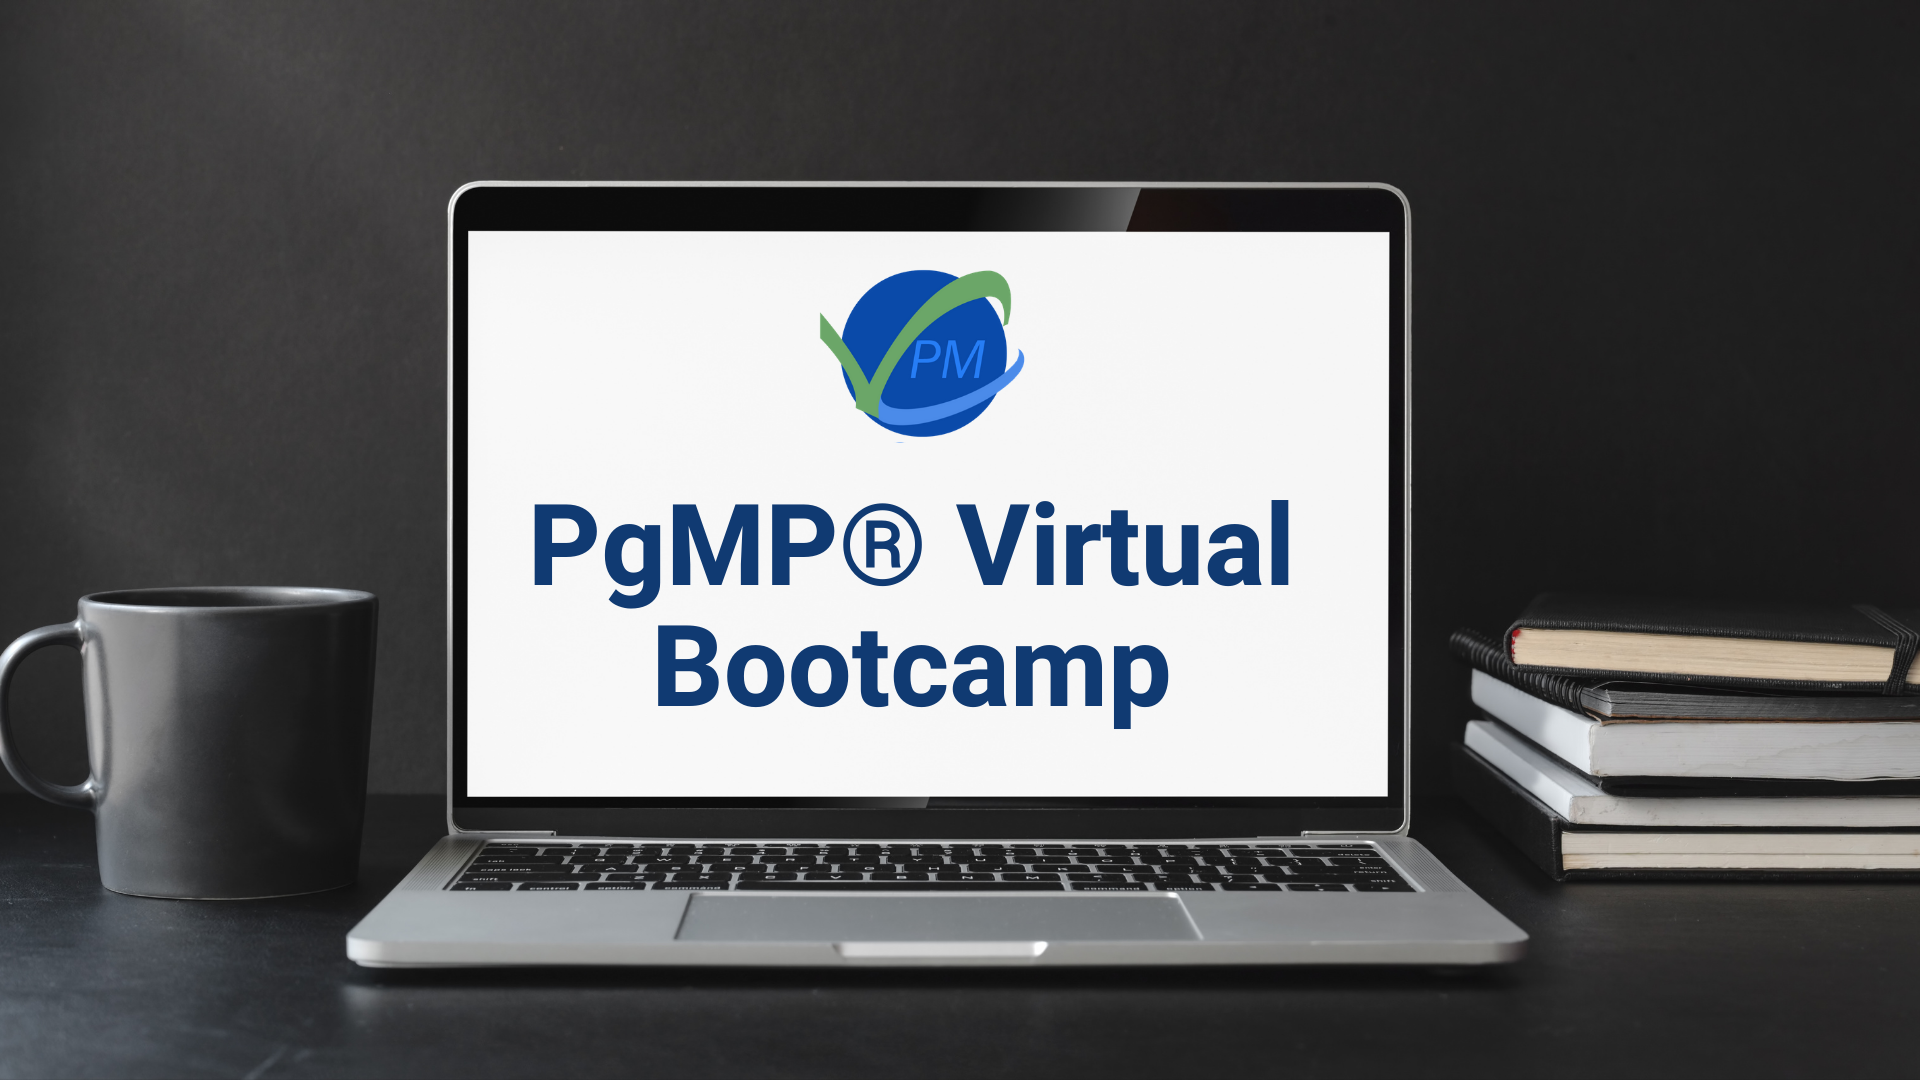 PgMP® San Francisco / Chicago / New York / London / Riyadh / Dubai, 18 - 22 March 2021, Online PgMP Certification Training Class